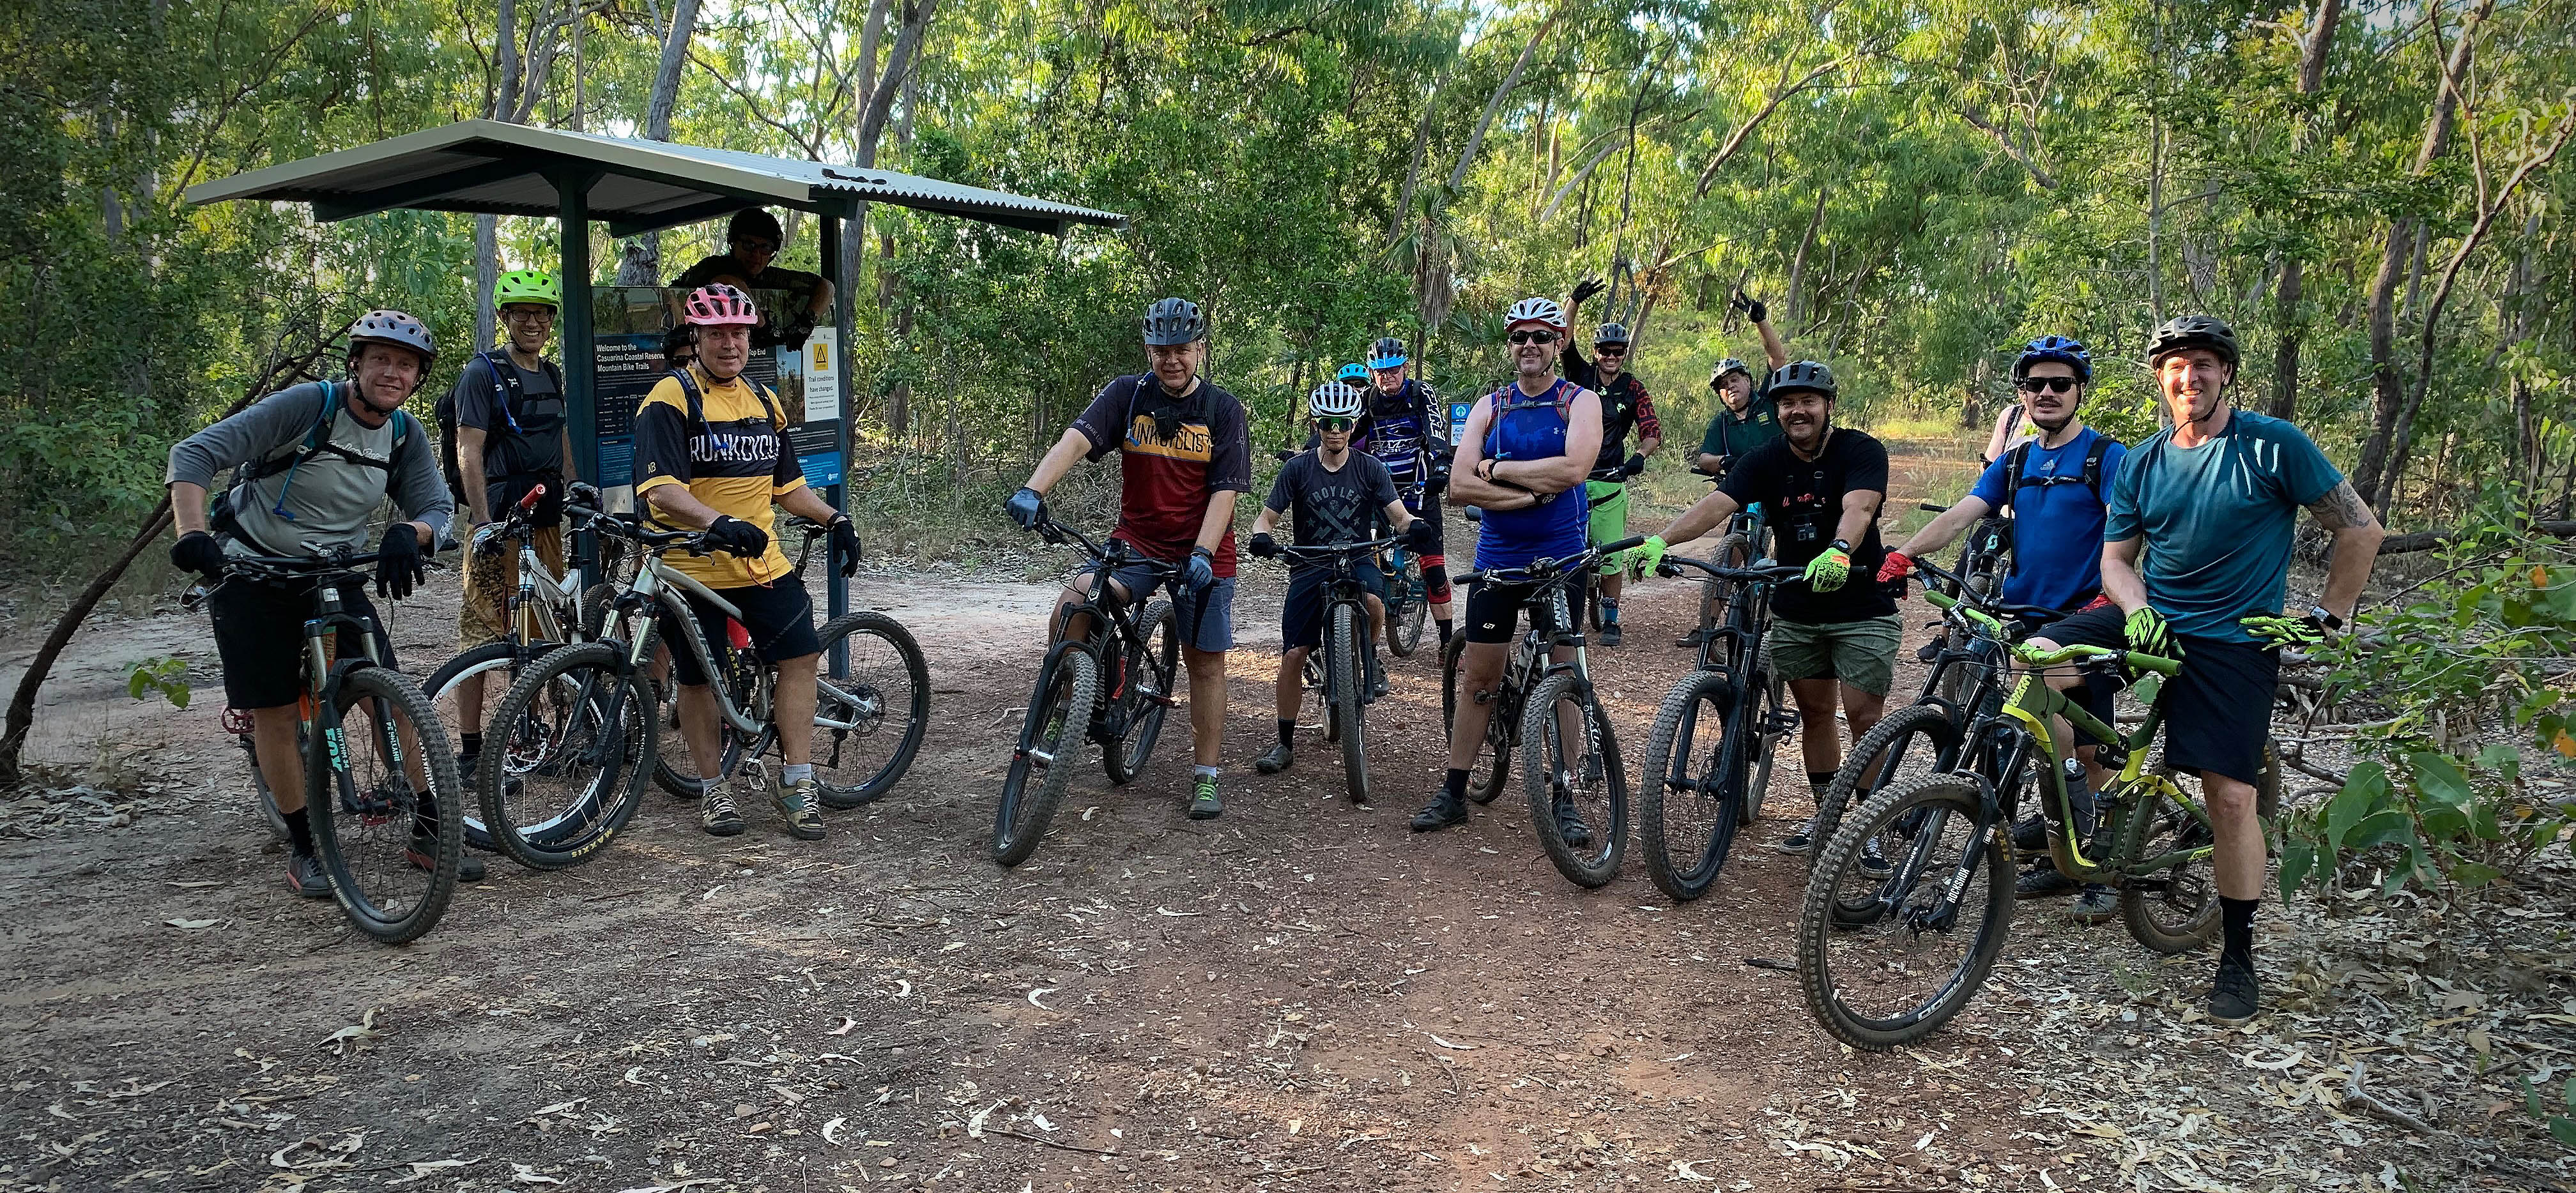 Lee Point Social Ride